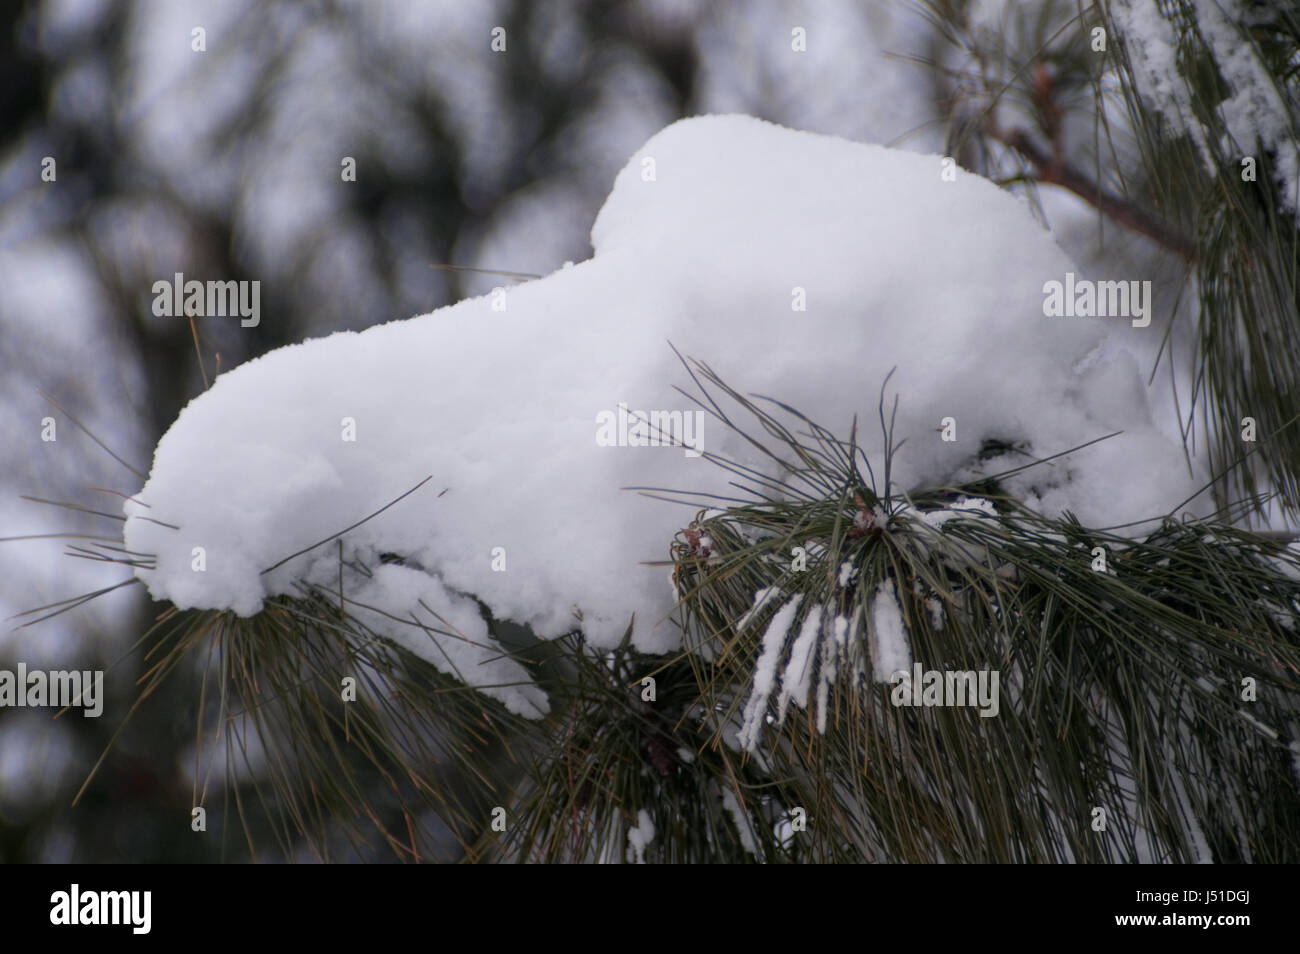 Snow On a Branch, Winter - Stock Image